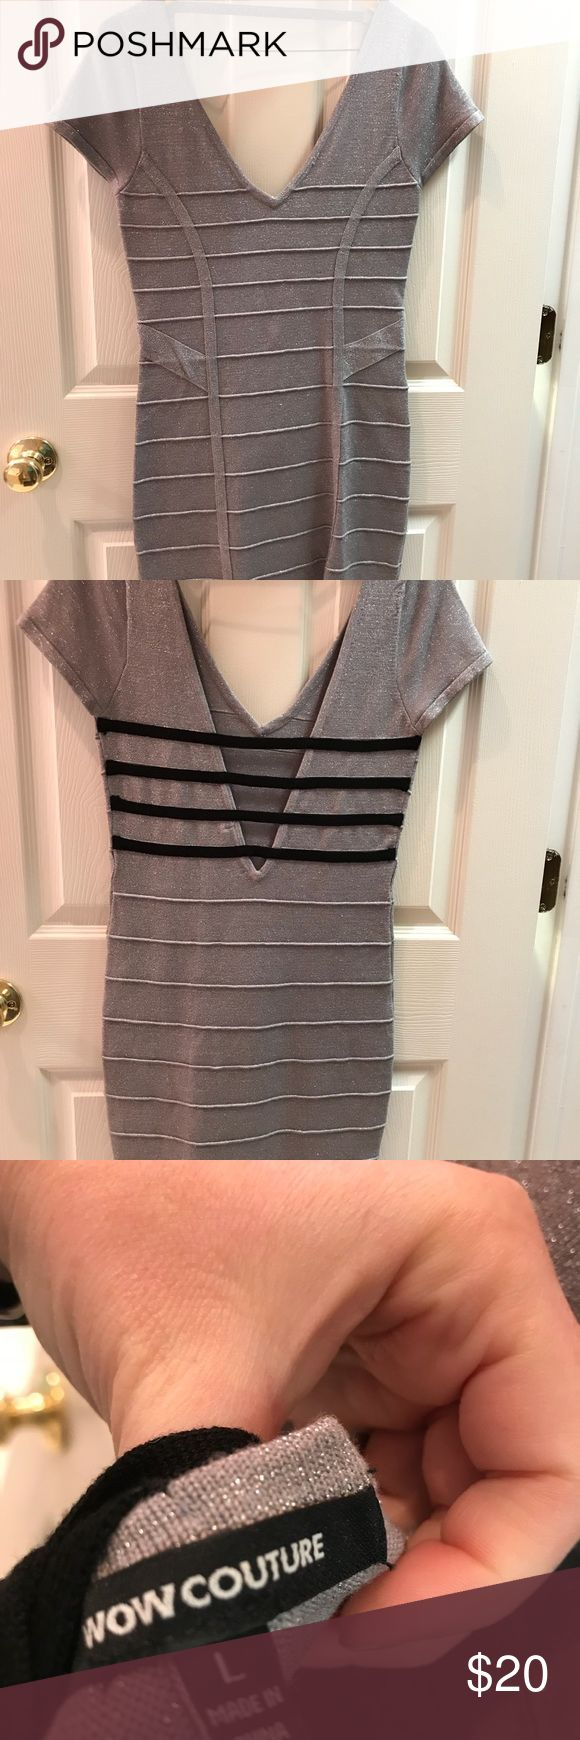 Wow Couture silver bodycon dress Silver and Black bodycon dress. Super cute on! Size large but per the company, large fits sizes 6-8. WOW couture Dresses Mini